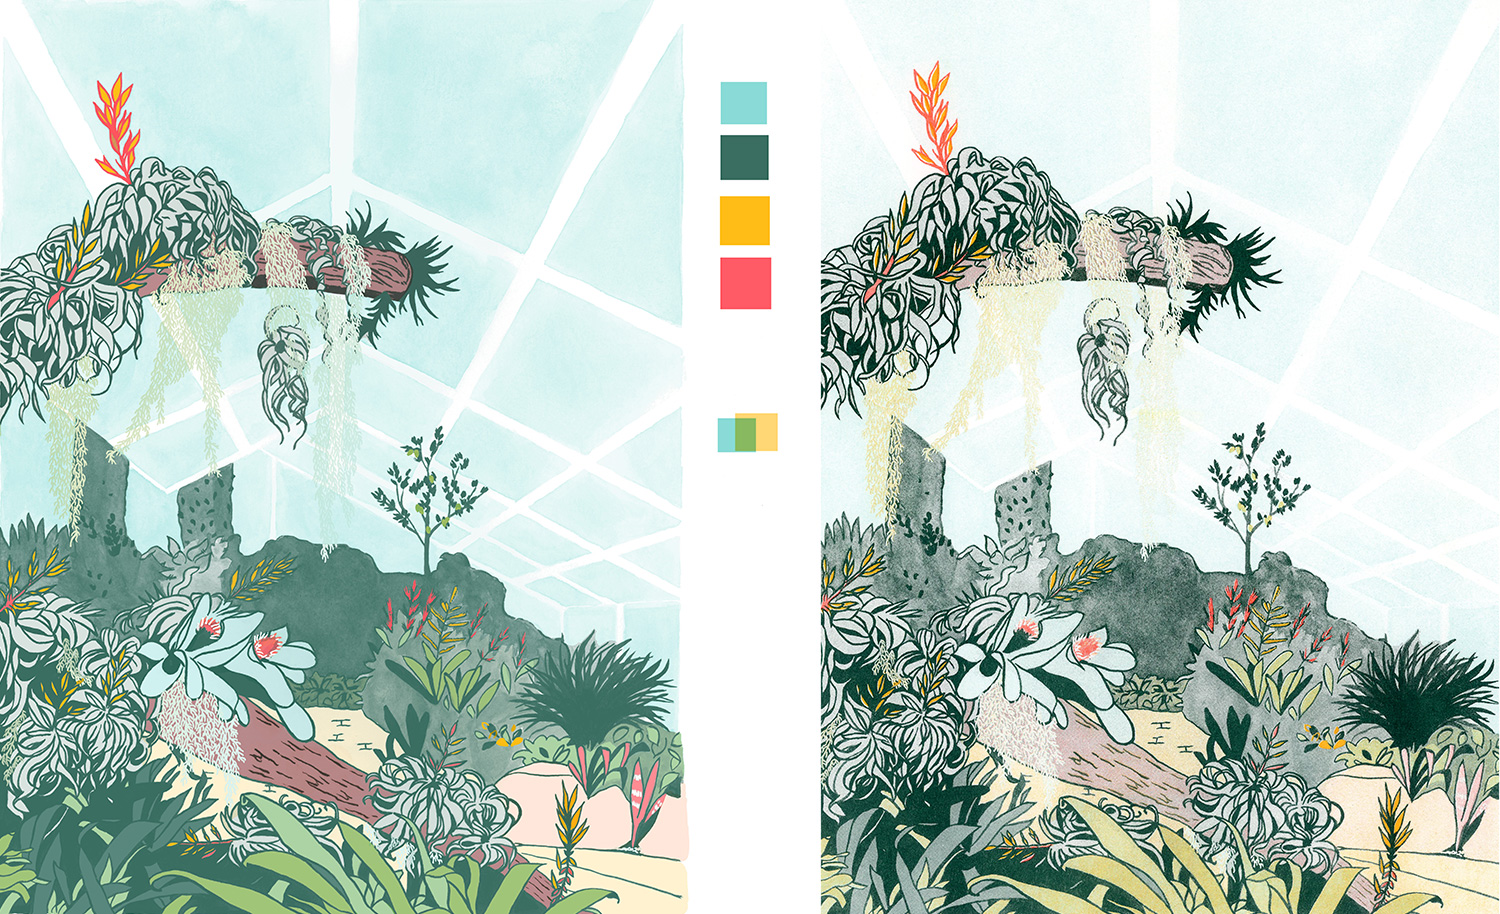 Kew Gardens Riso Print Expectation Vs. Reality